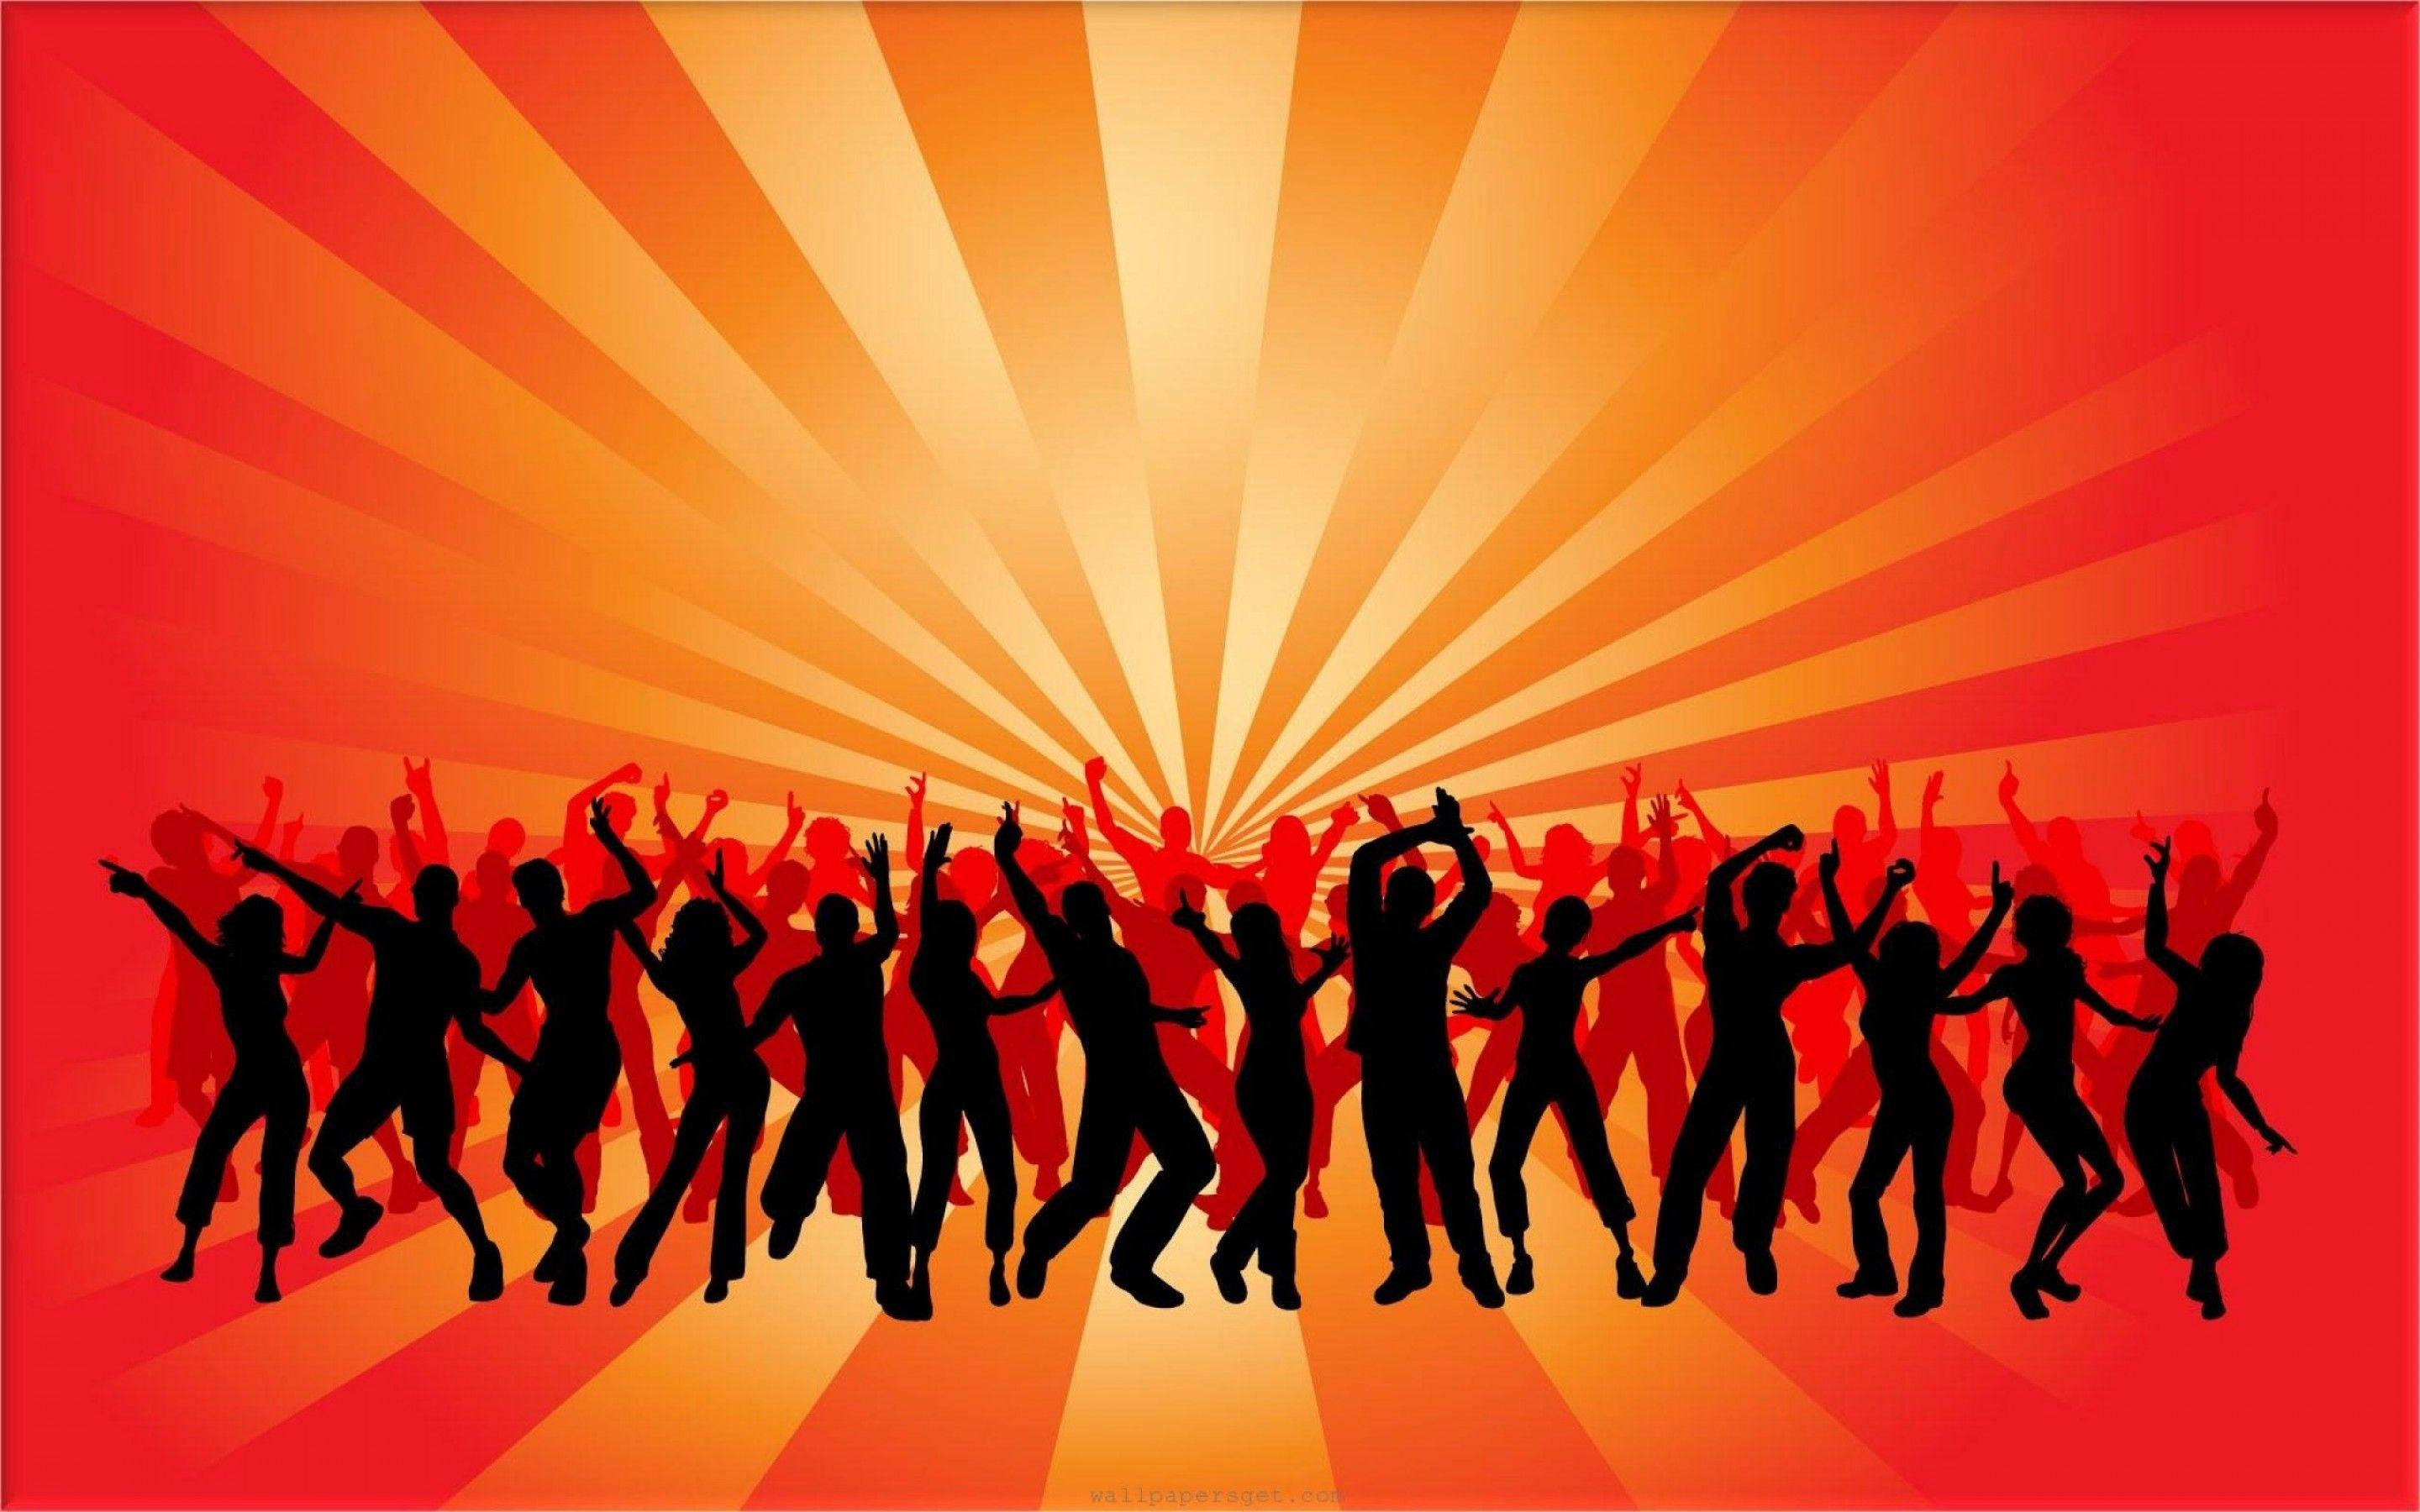 Line Art Resolution : Dance backgrounds image wallpaper cave